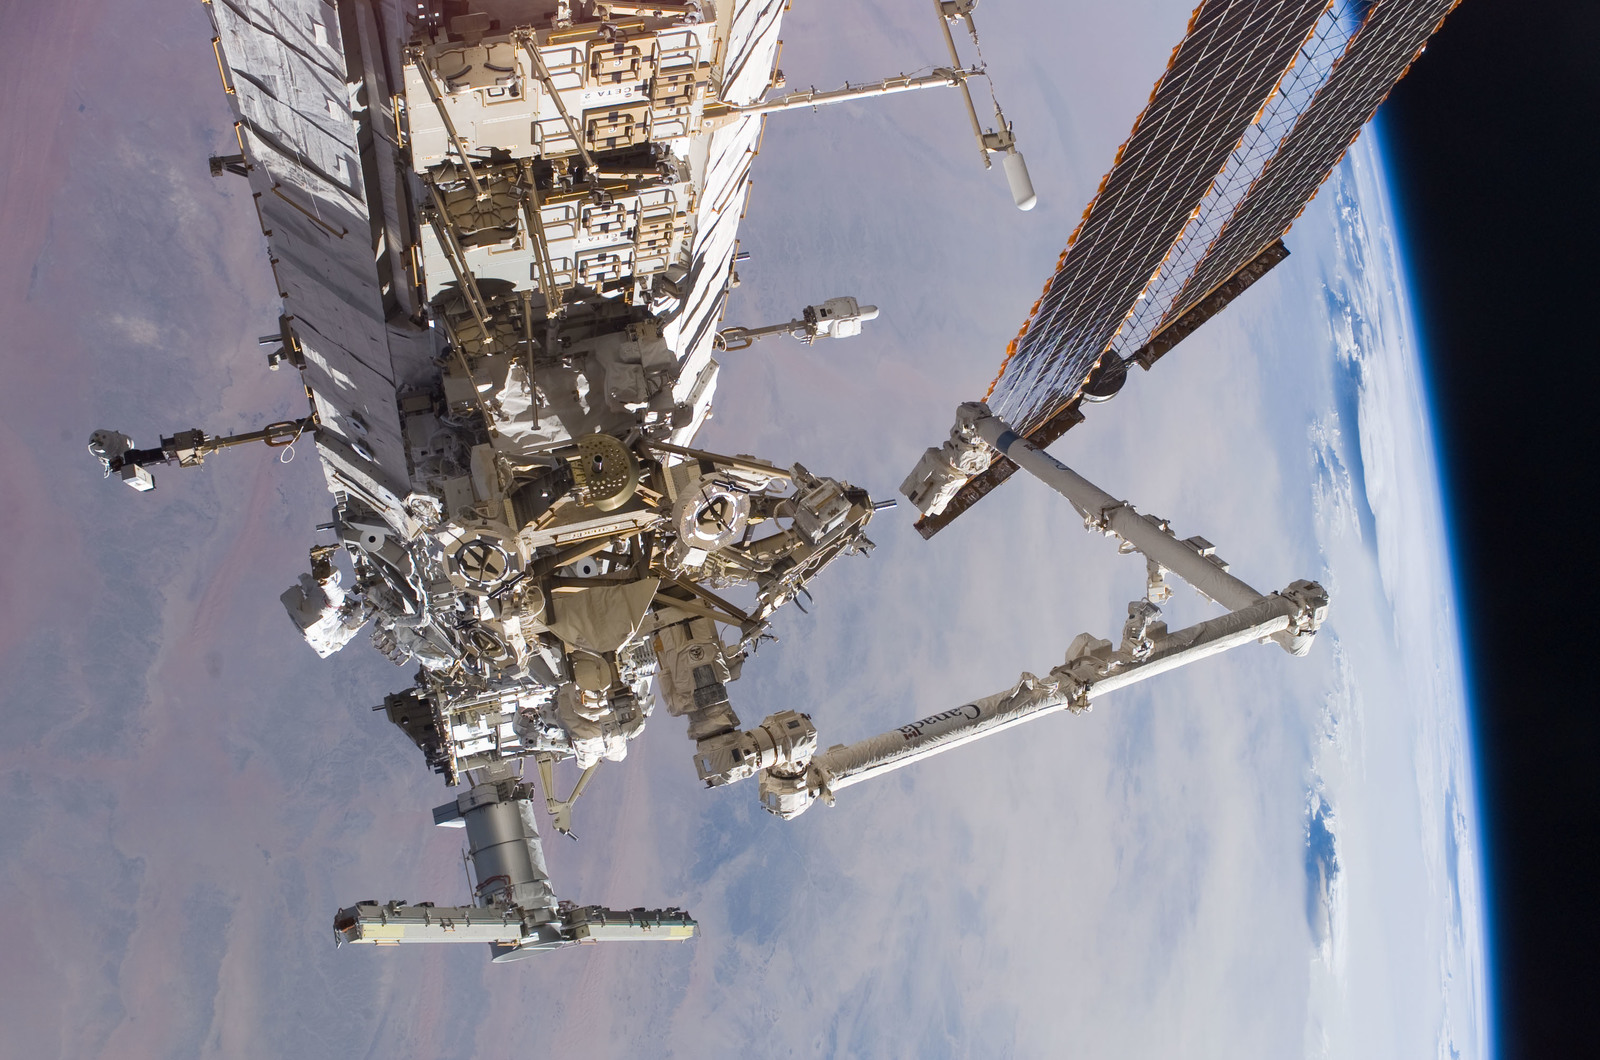 S115E05887 - STS-115 - Burbank and MacLean prepare the SARJ on the P3 - P4 Truss Segment during STS-115 EVA